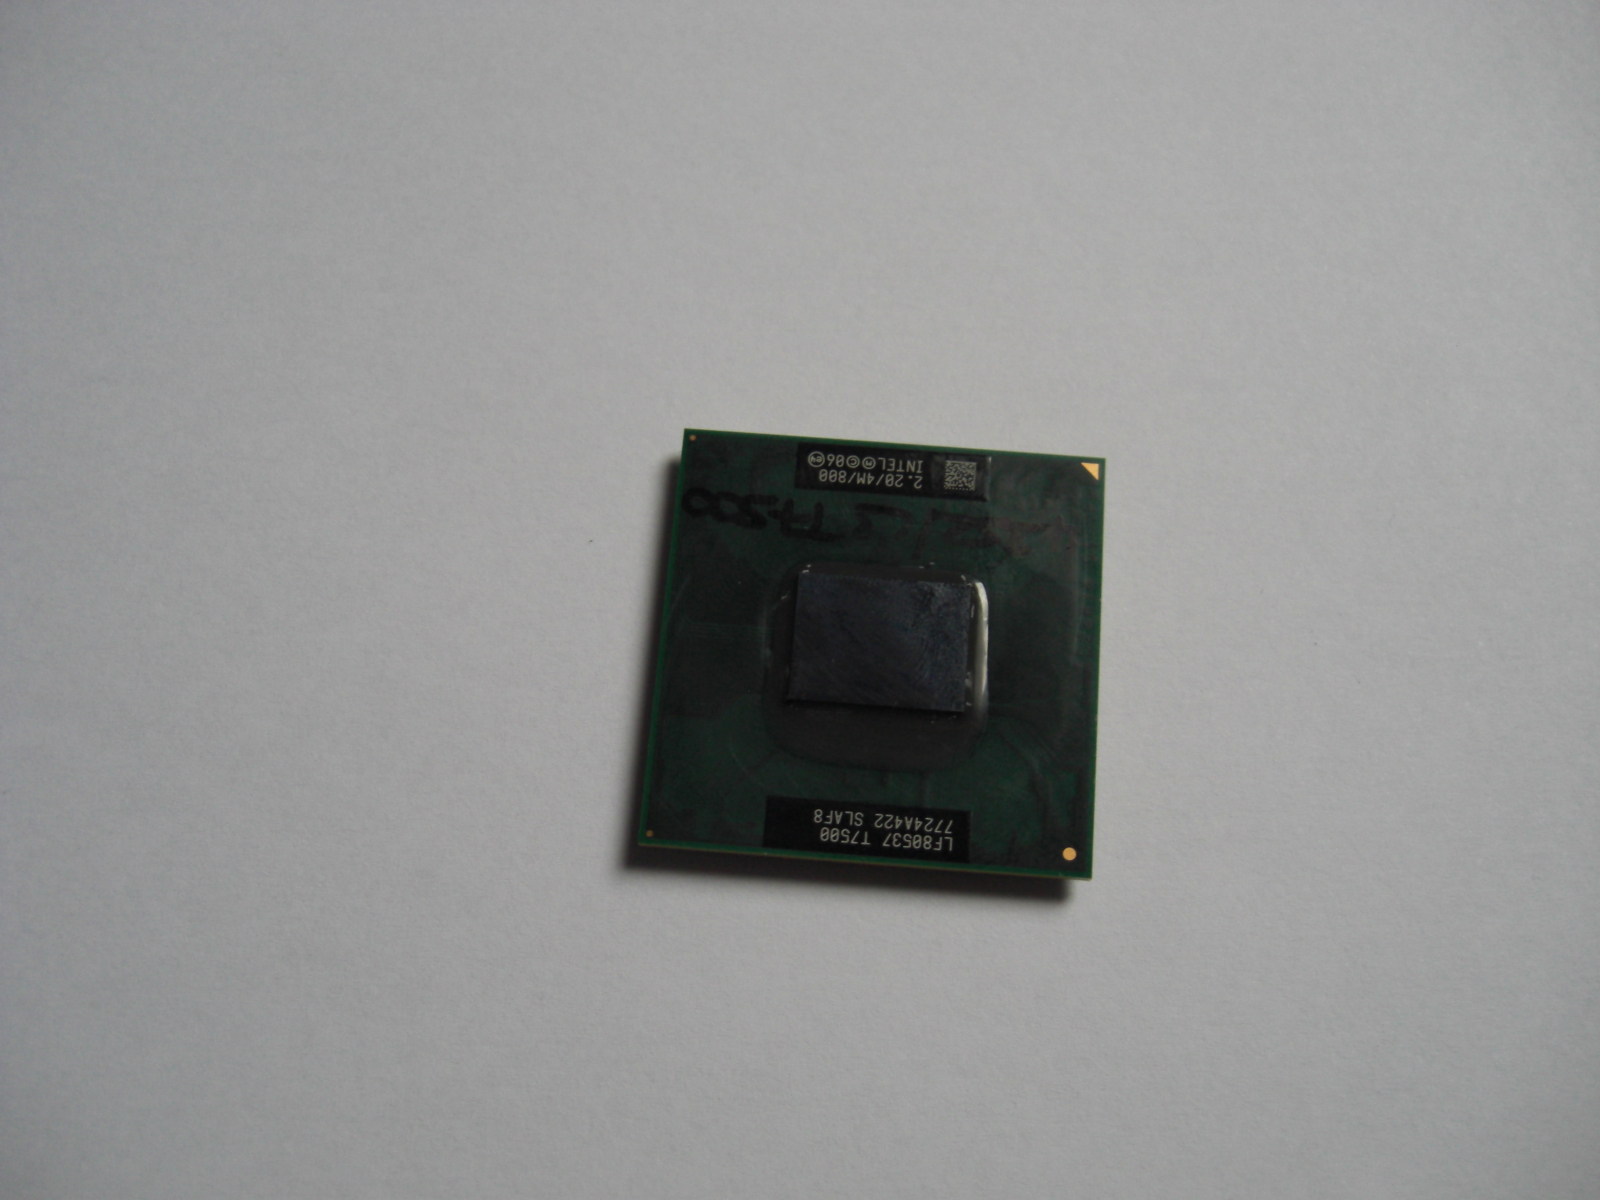 INTEL CORE 2 DUO M 2.26GHZ SLB3R